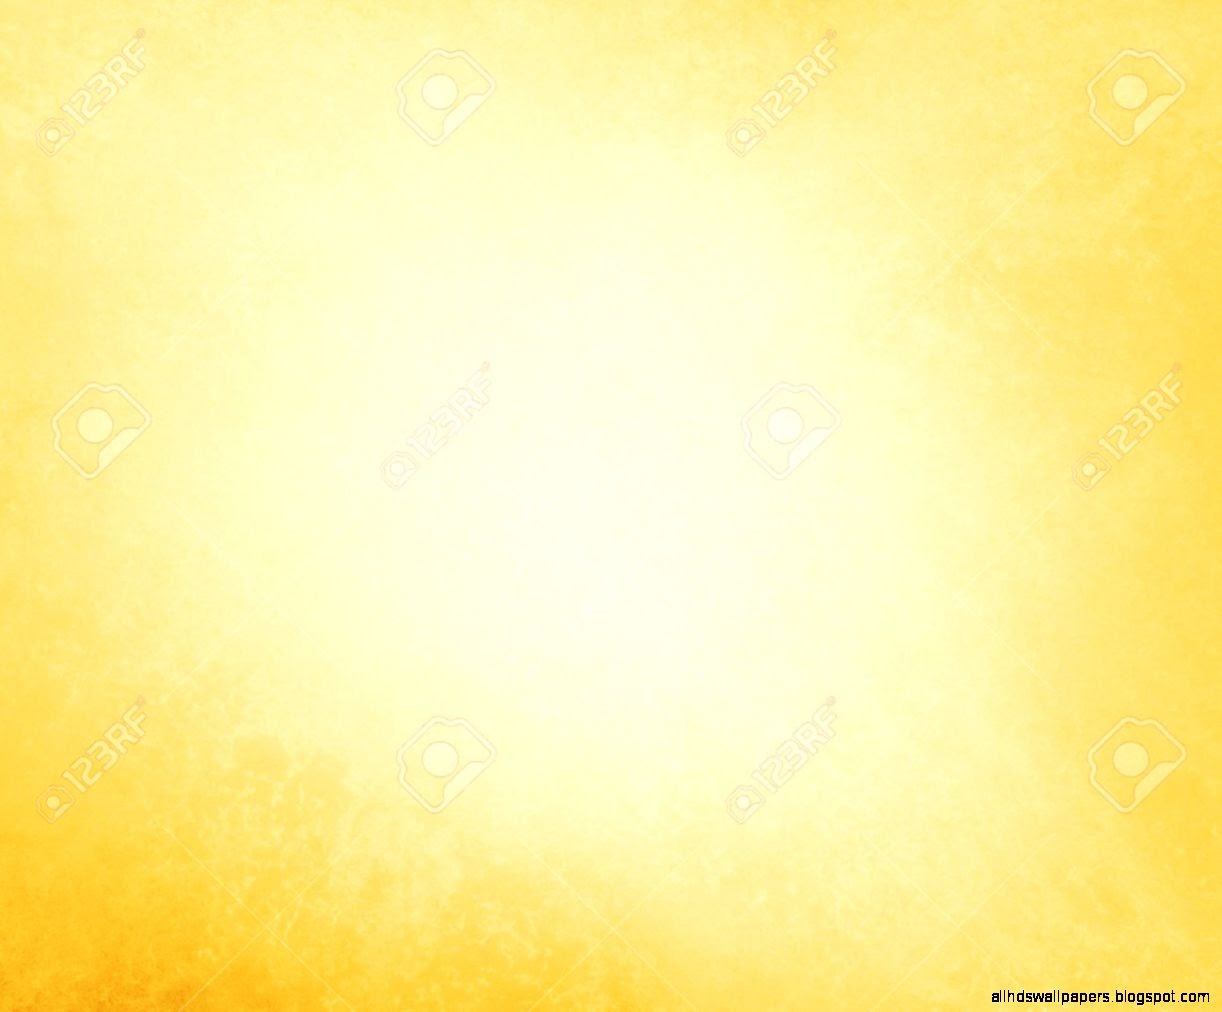 Colors That Go With Light Gray Plain Light Yellow Color Wallpaper All Hd Wallpapers